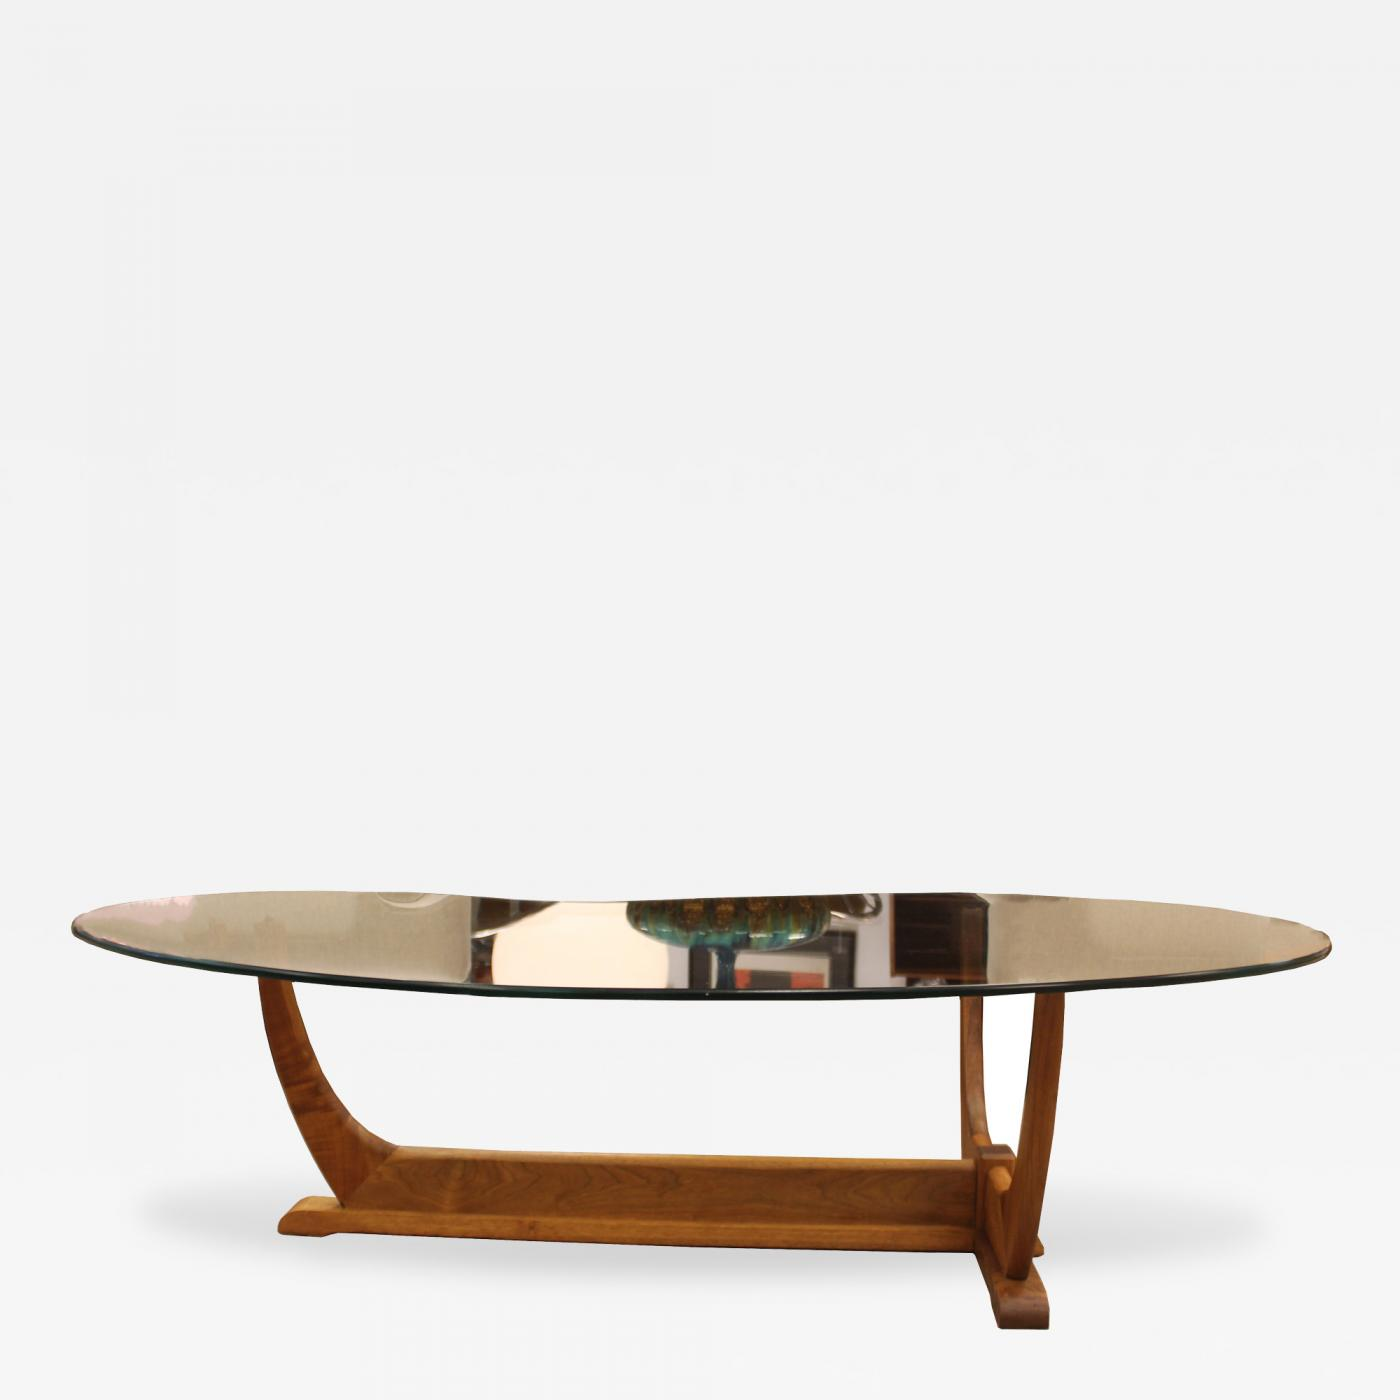 Listings / Furniture / Tables / Coffee Tables · Adrian Pearsall ... - Adrian Pearsall - Mid Century Modern Kidney Shaped Walnut Glass